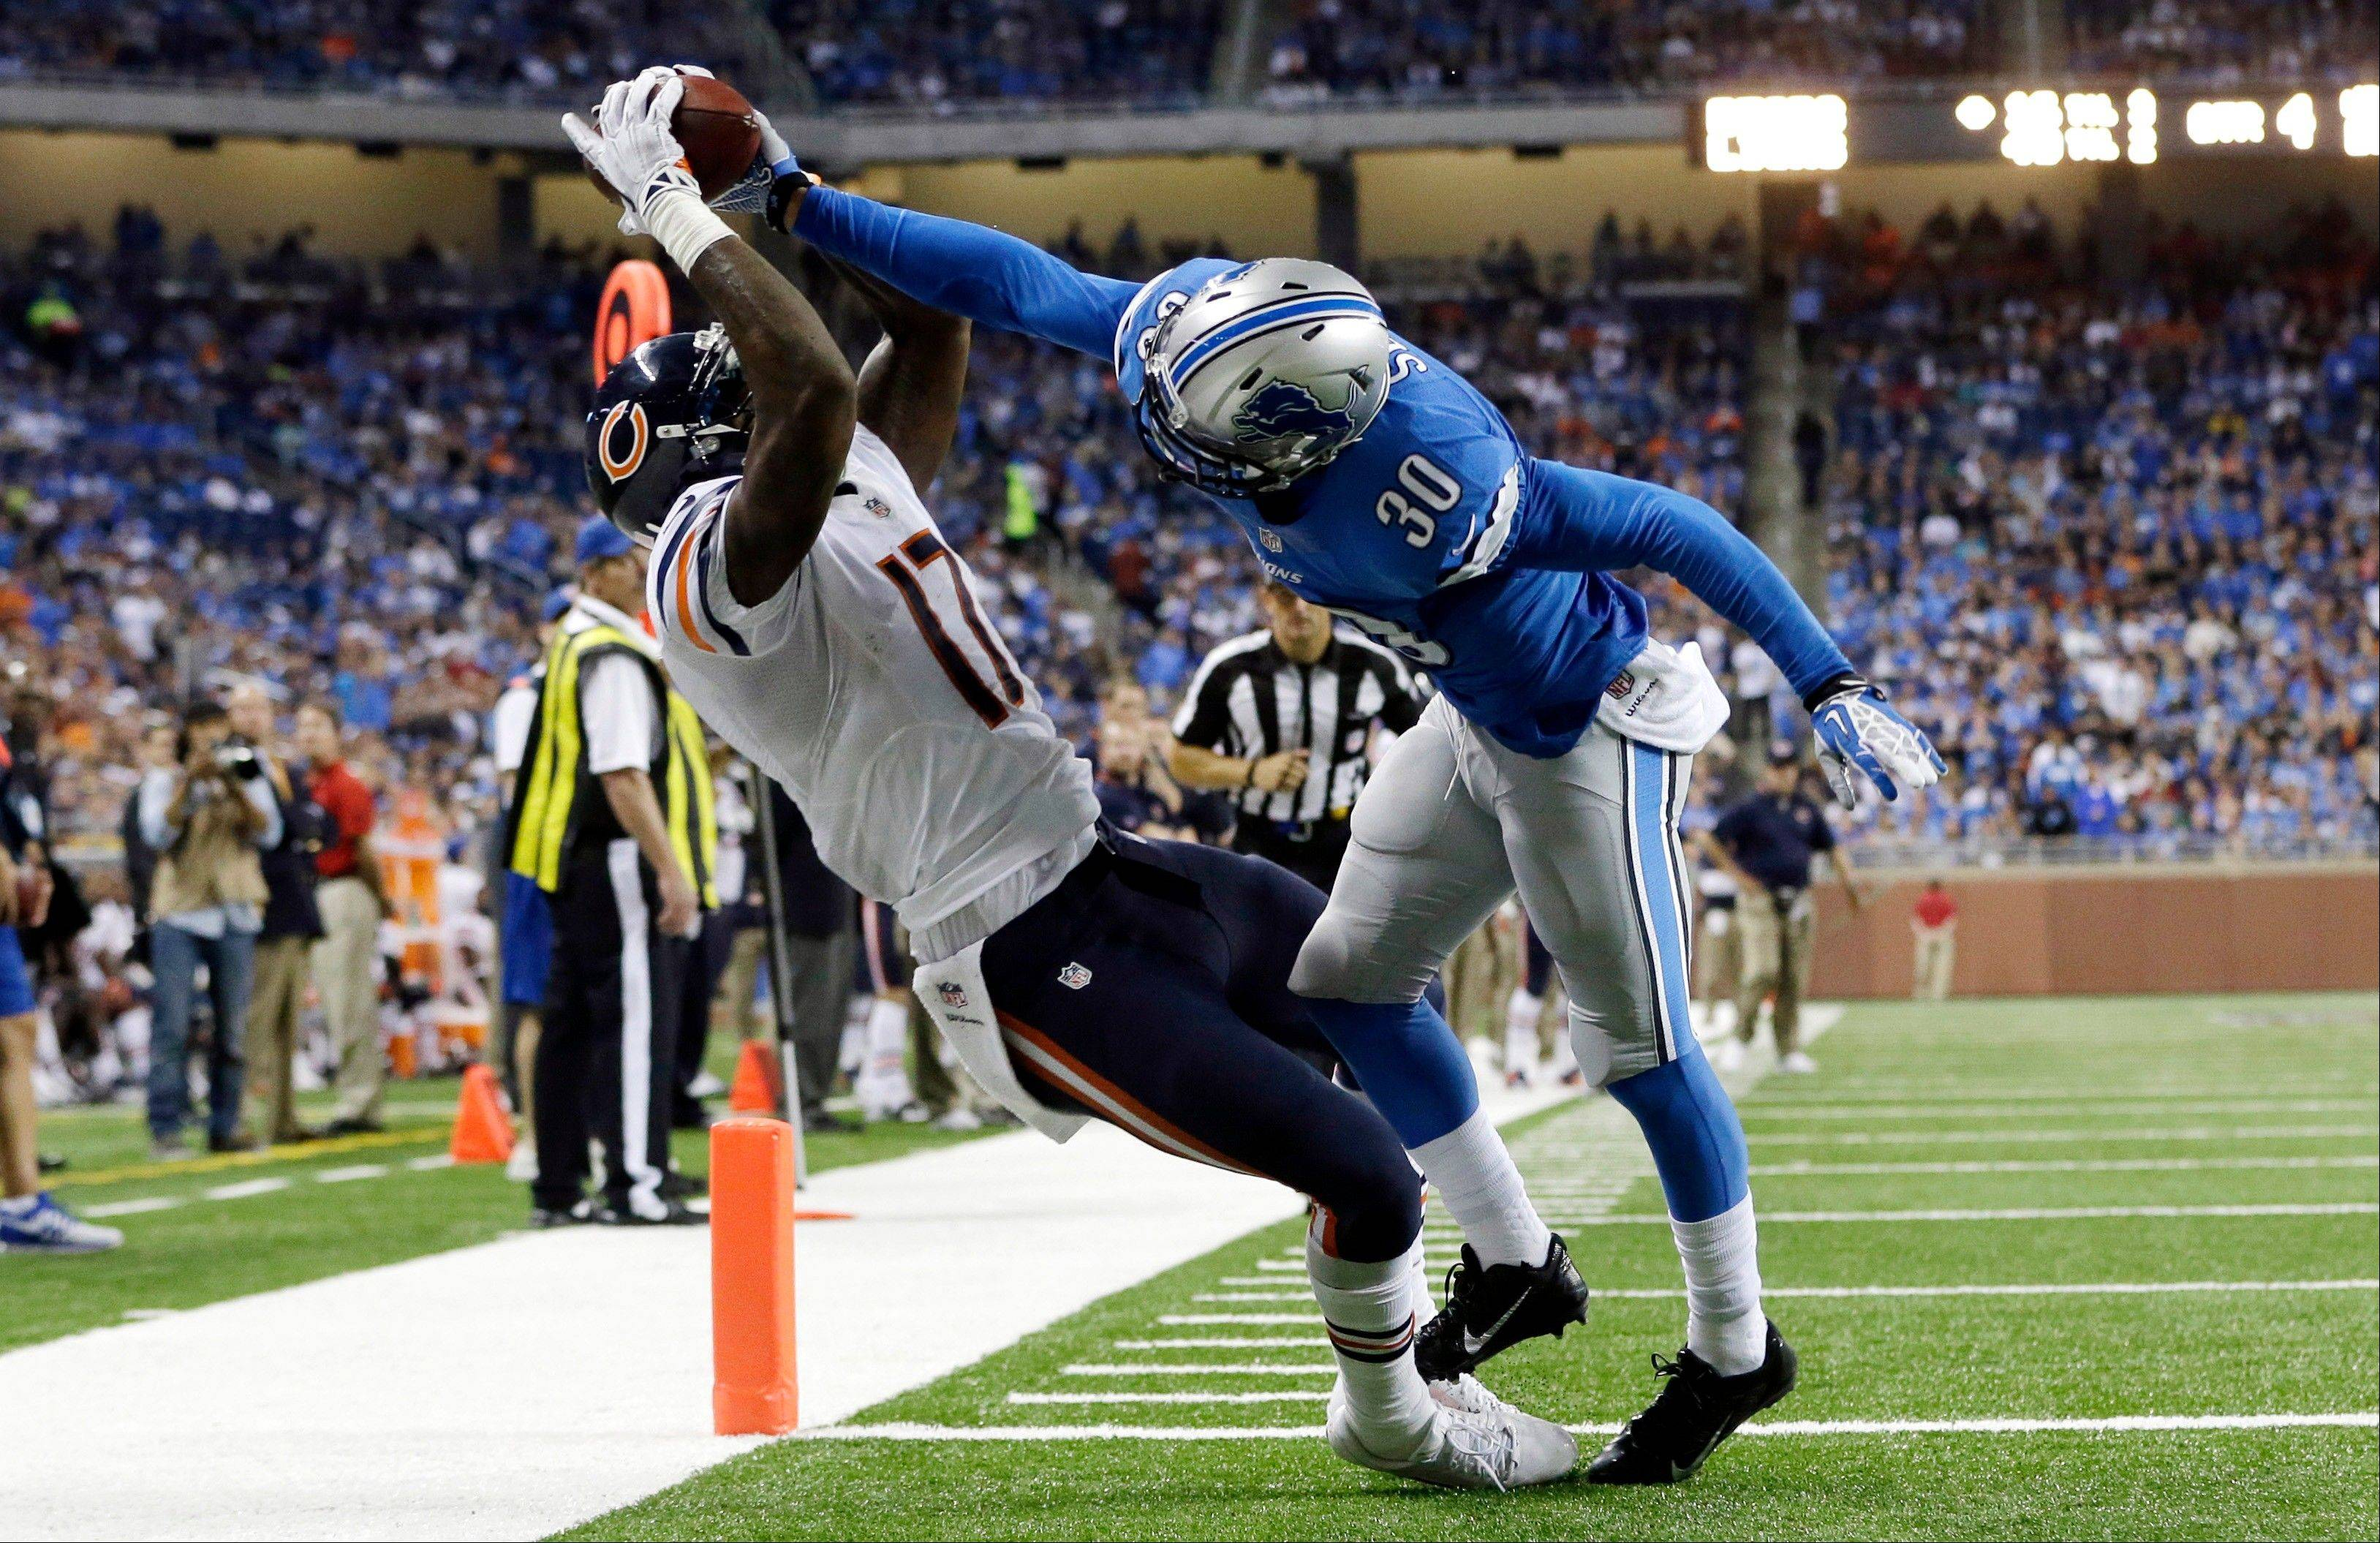 Chicago Bears wide receiver Alshon Jeffery (17), defended by Detroit Lions cornerback Darius Slay (30), scores on a 14-yard reception during the fourth quarter.